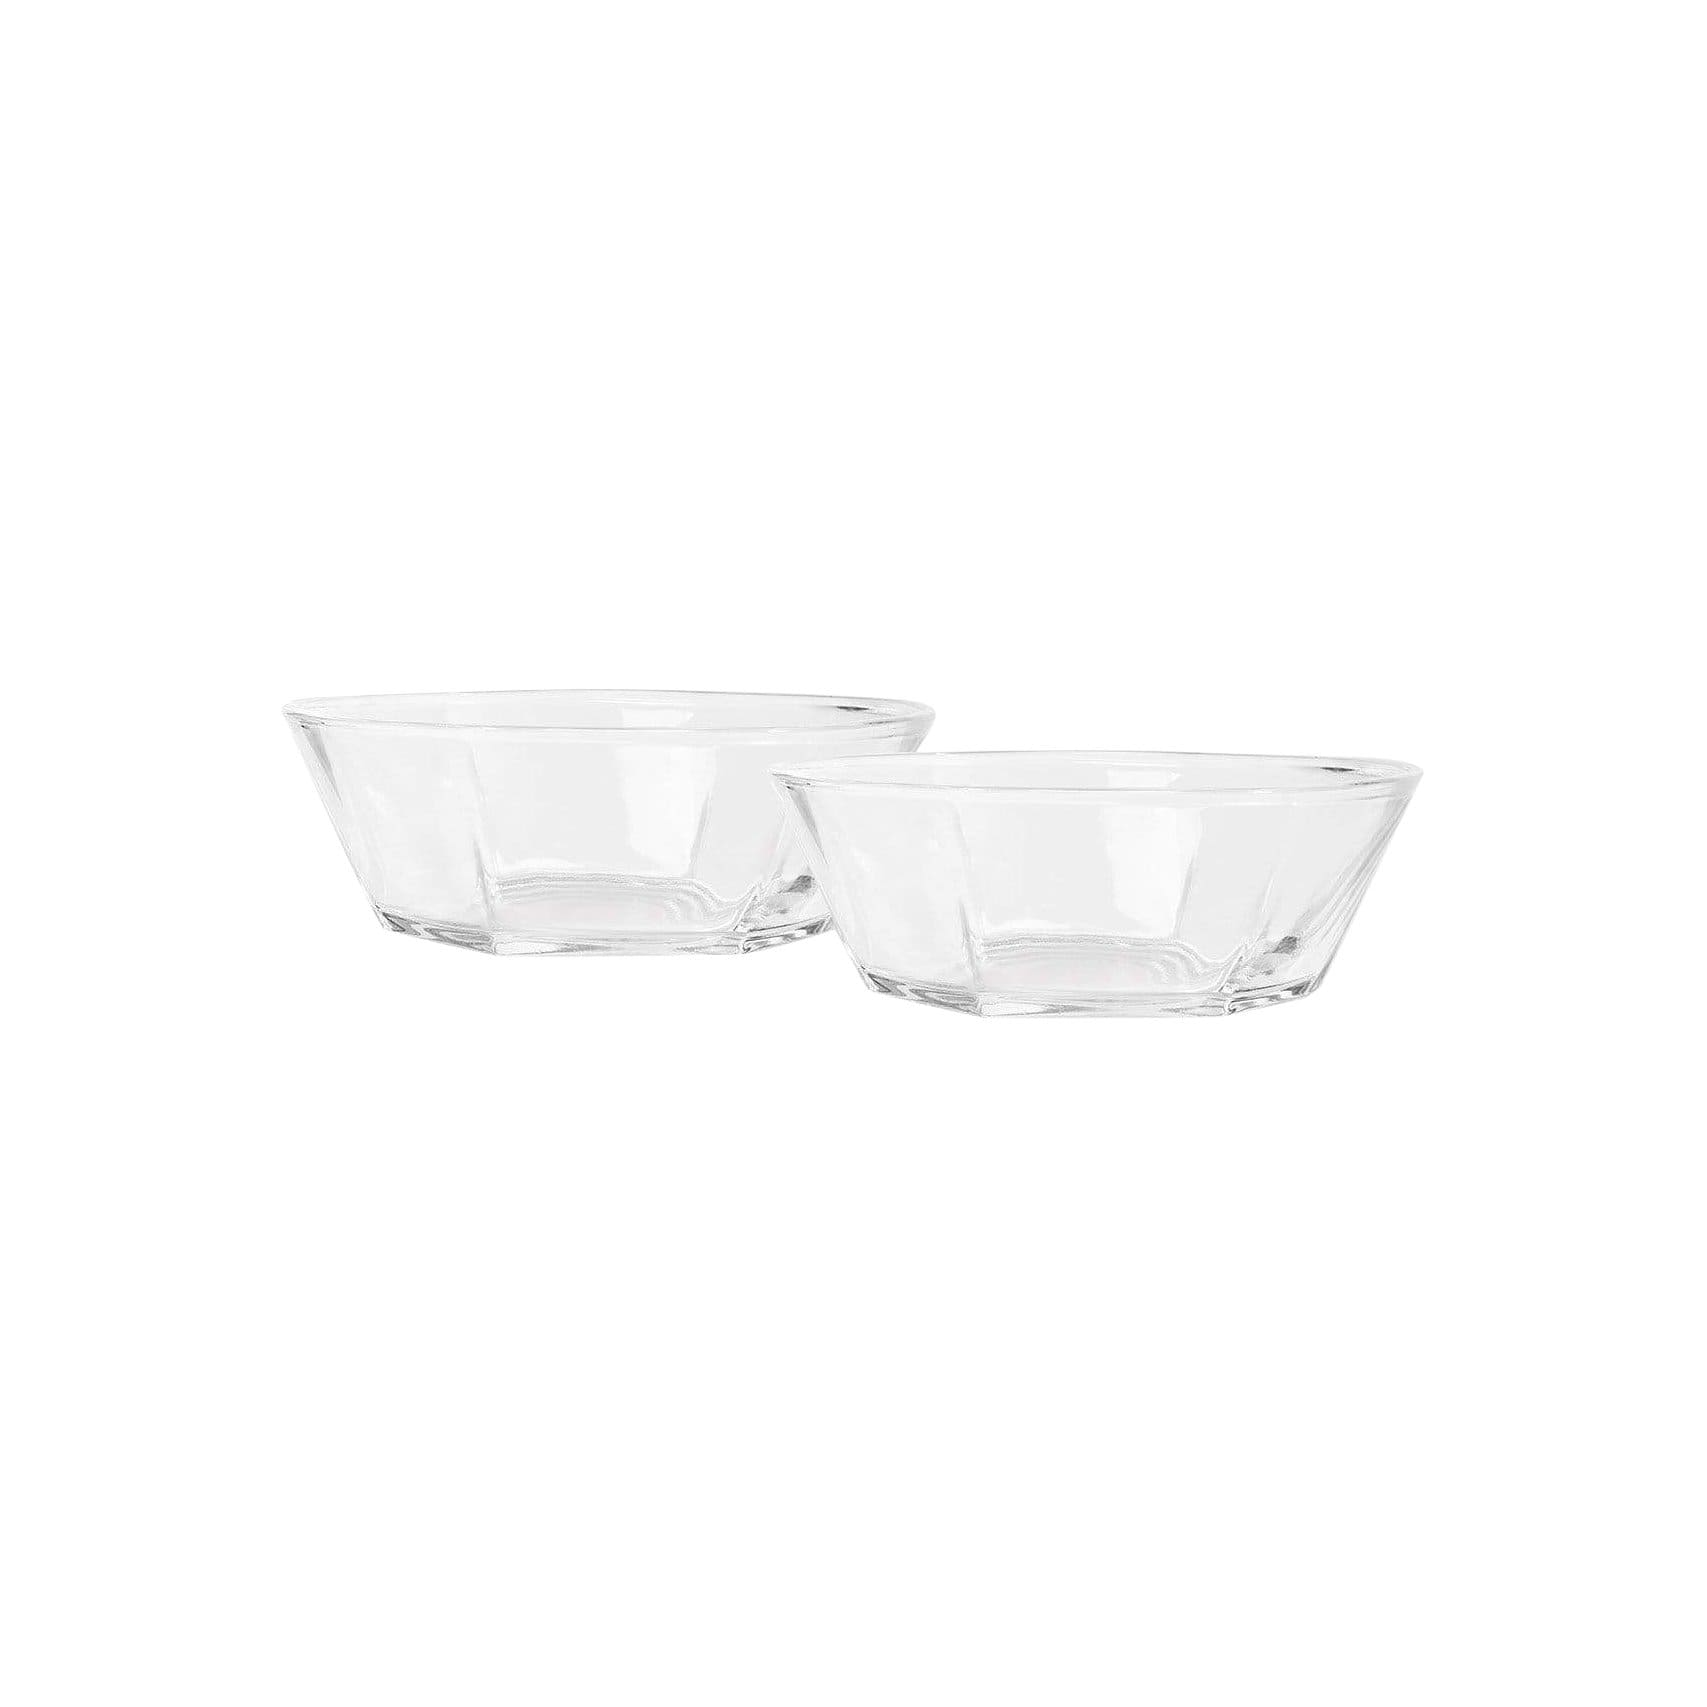 Lucent Bowls - Set of 2